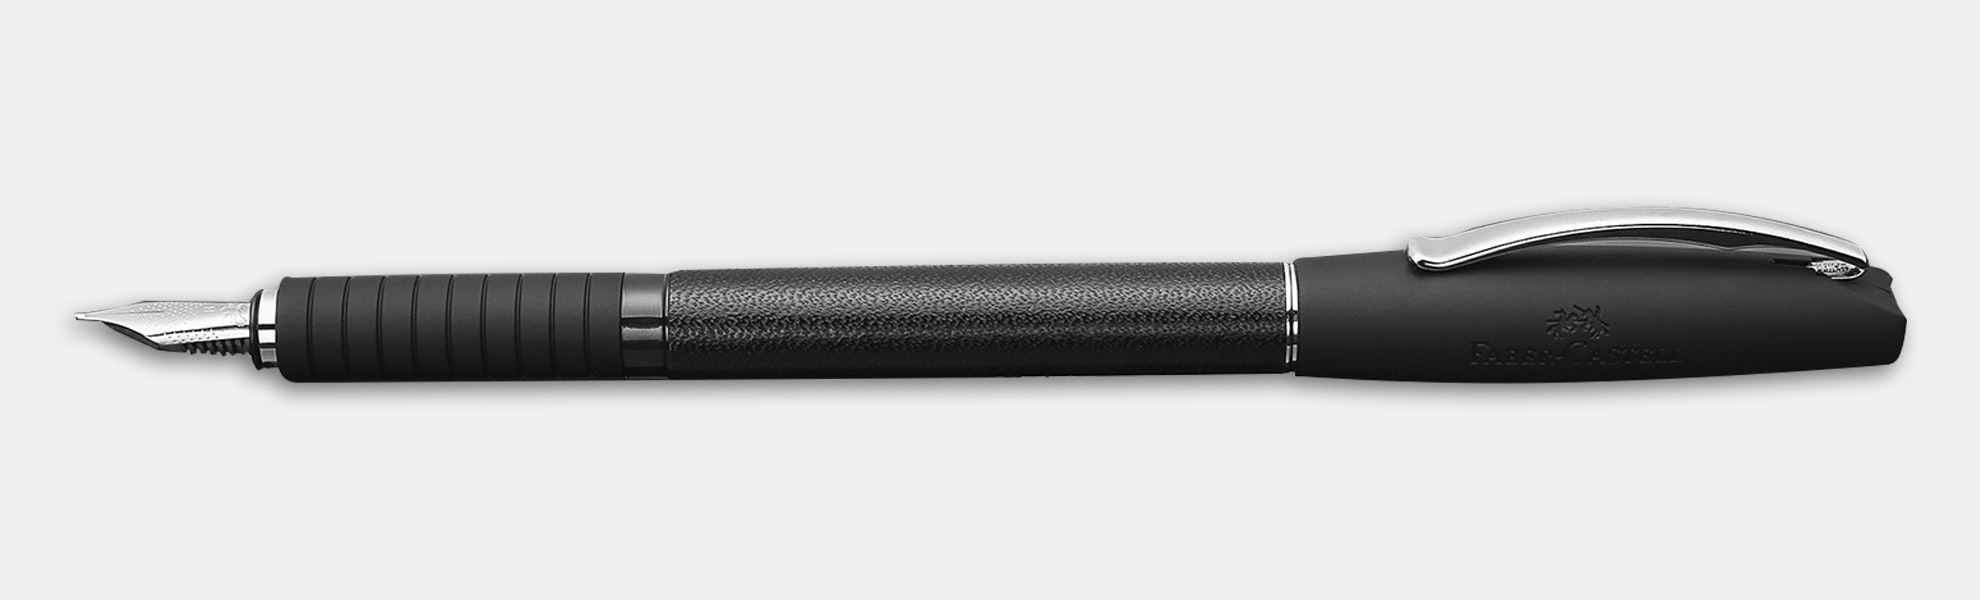 Faber-Castell Basic Fountain Pen